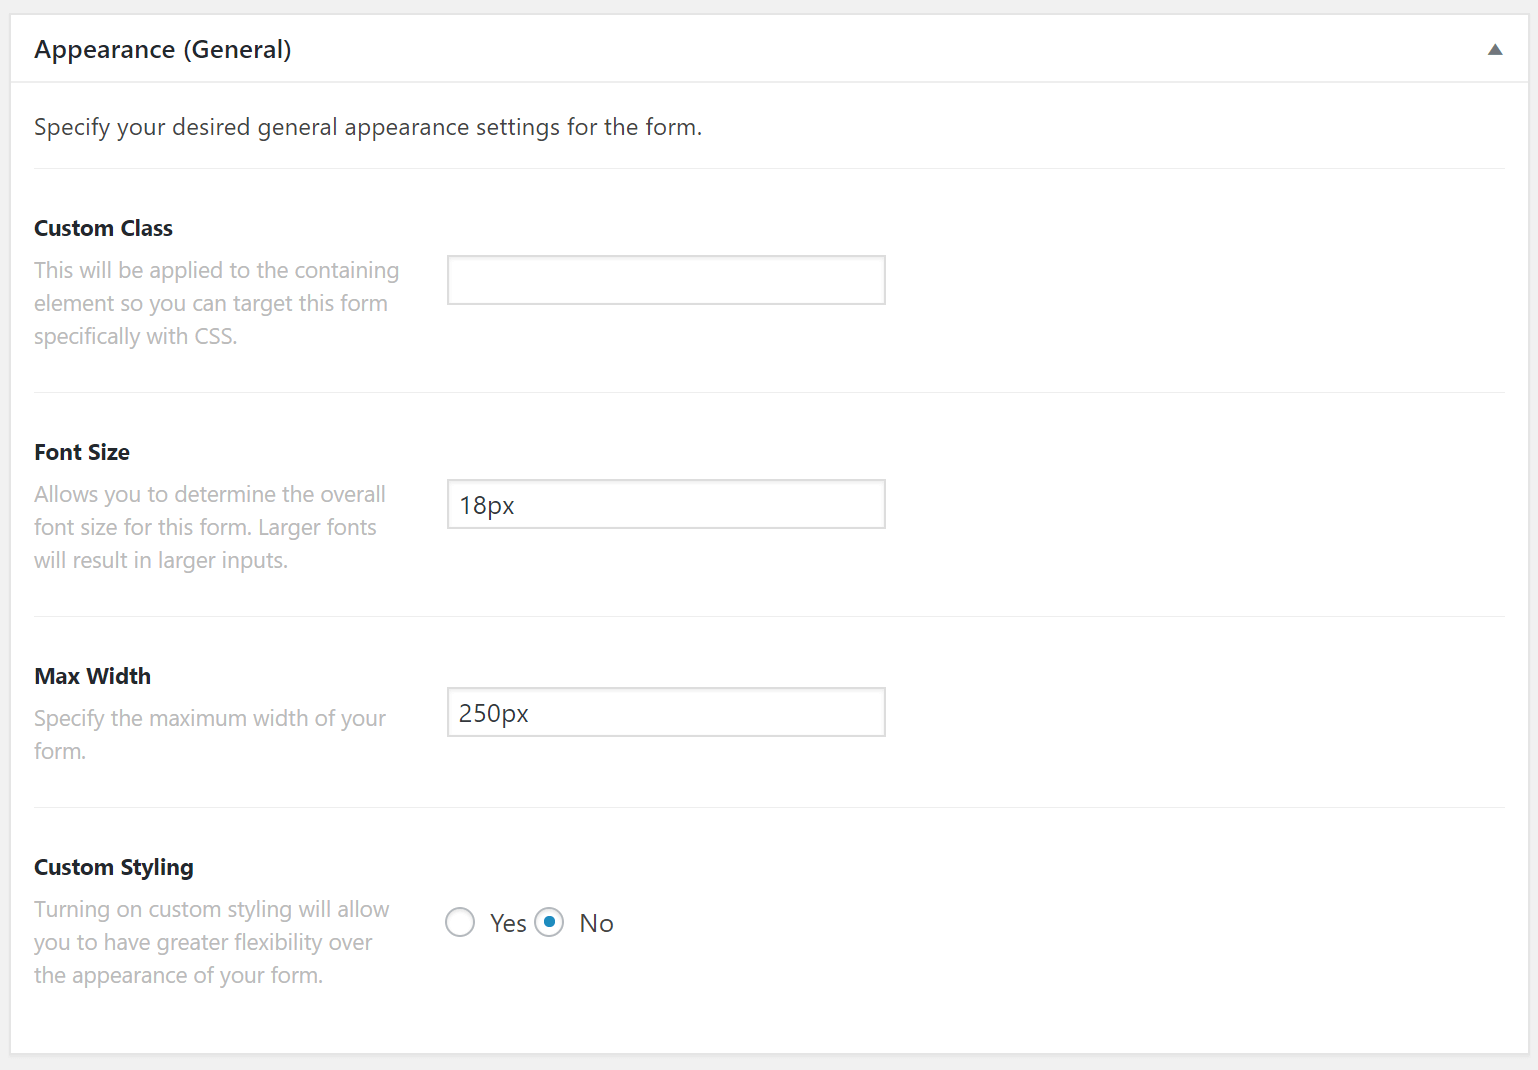 Email Forms General Appearance